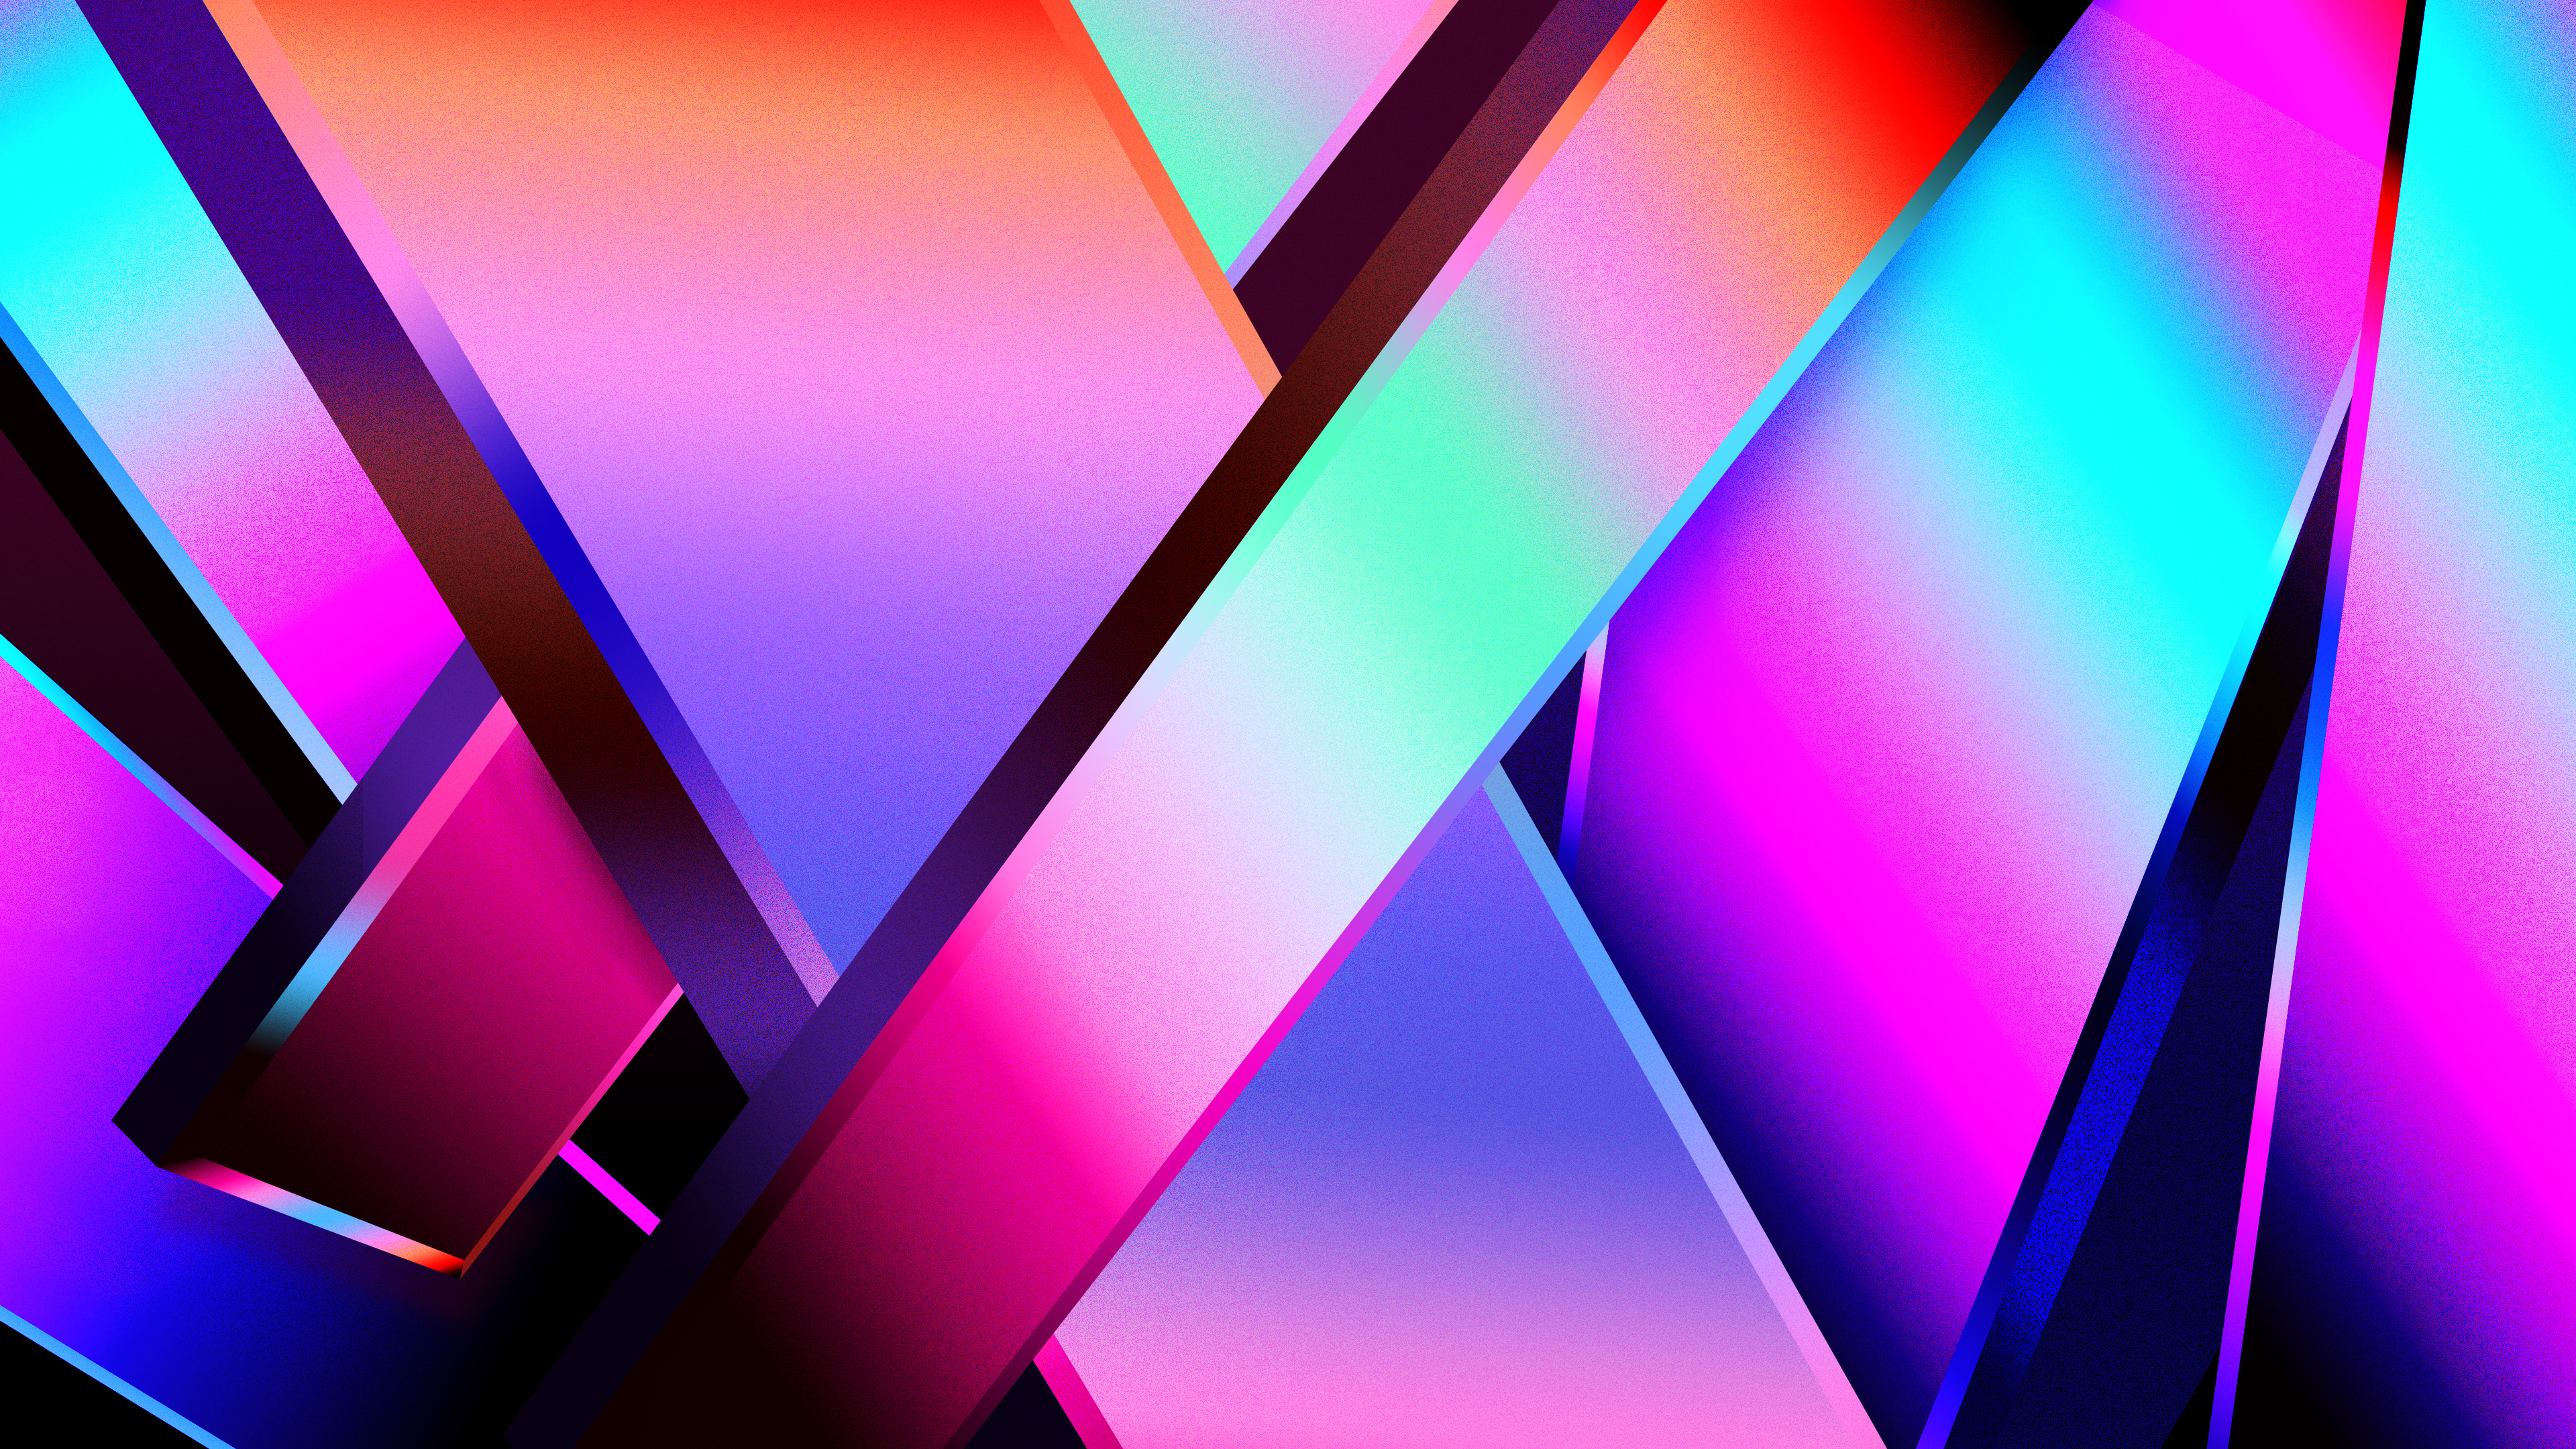 true bright colors of abstract 4k 1555207981 - True Bright Colors Of Abstract 4k - hd-wallpapers, abstract wallpapers, 4k-wallpapers